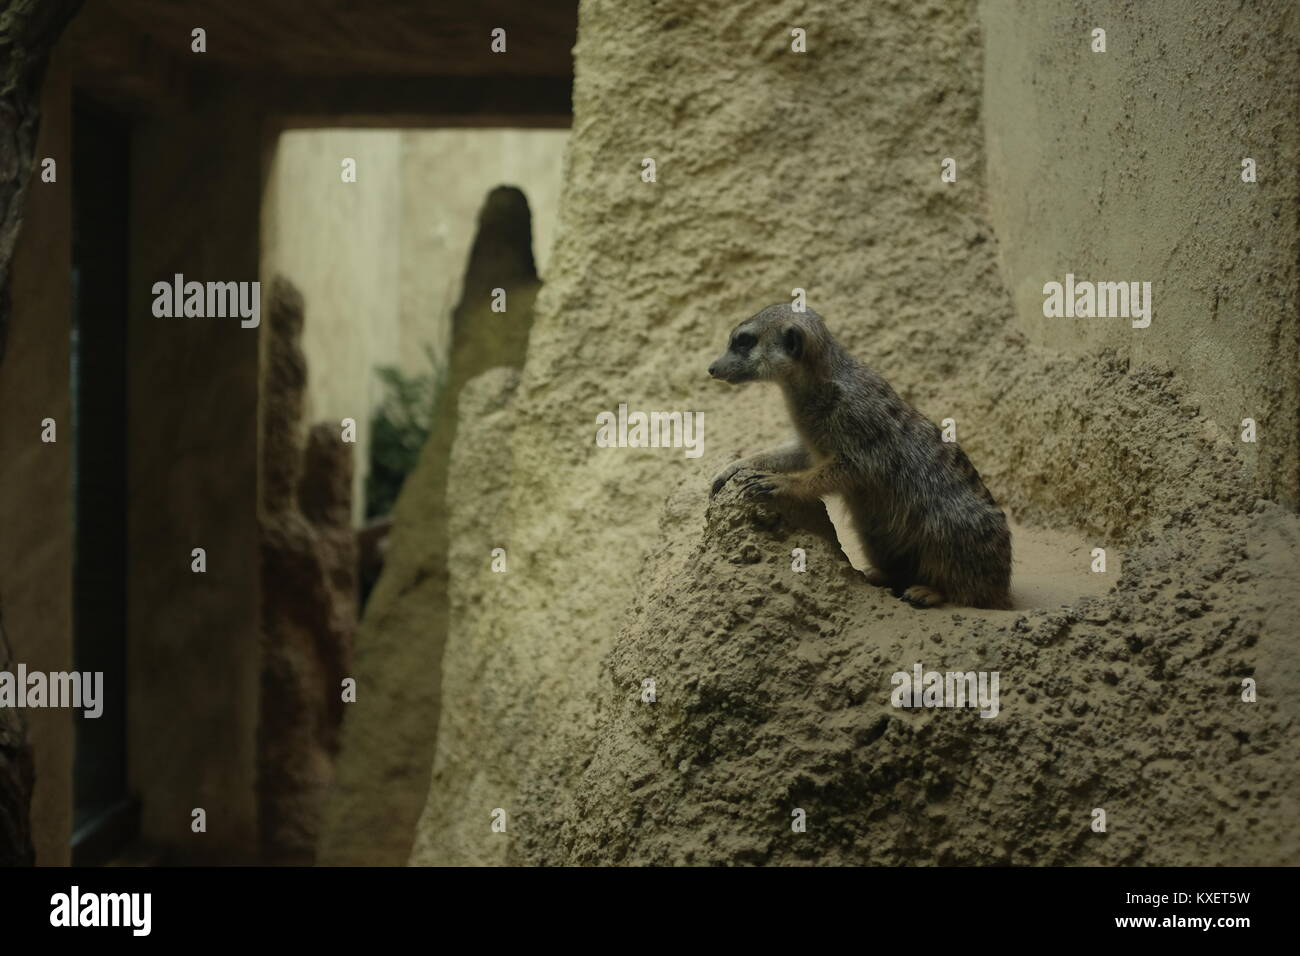 Meerkat Chilling at the Berlin Zoo - Stock Image